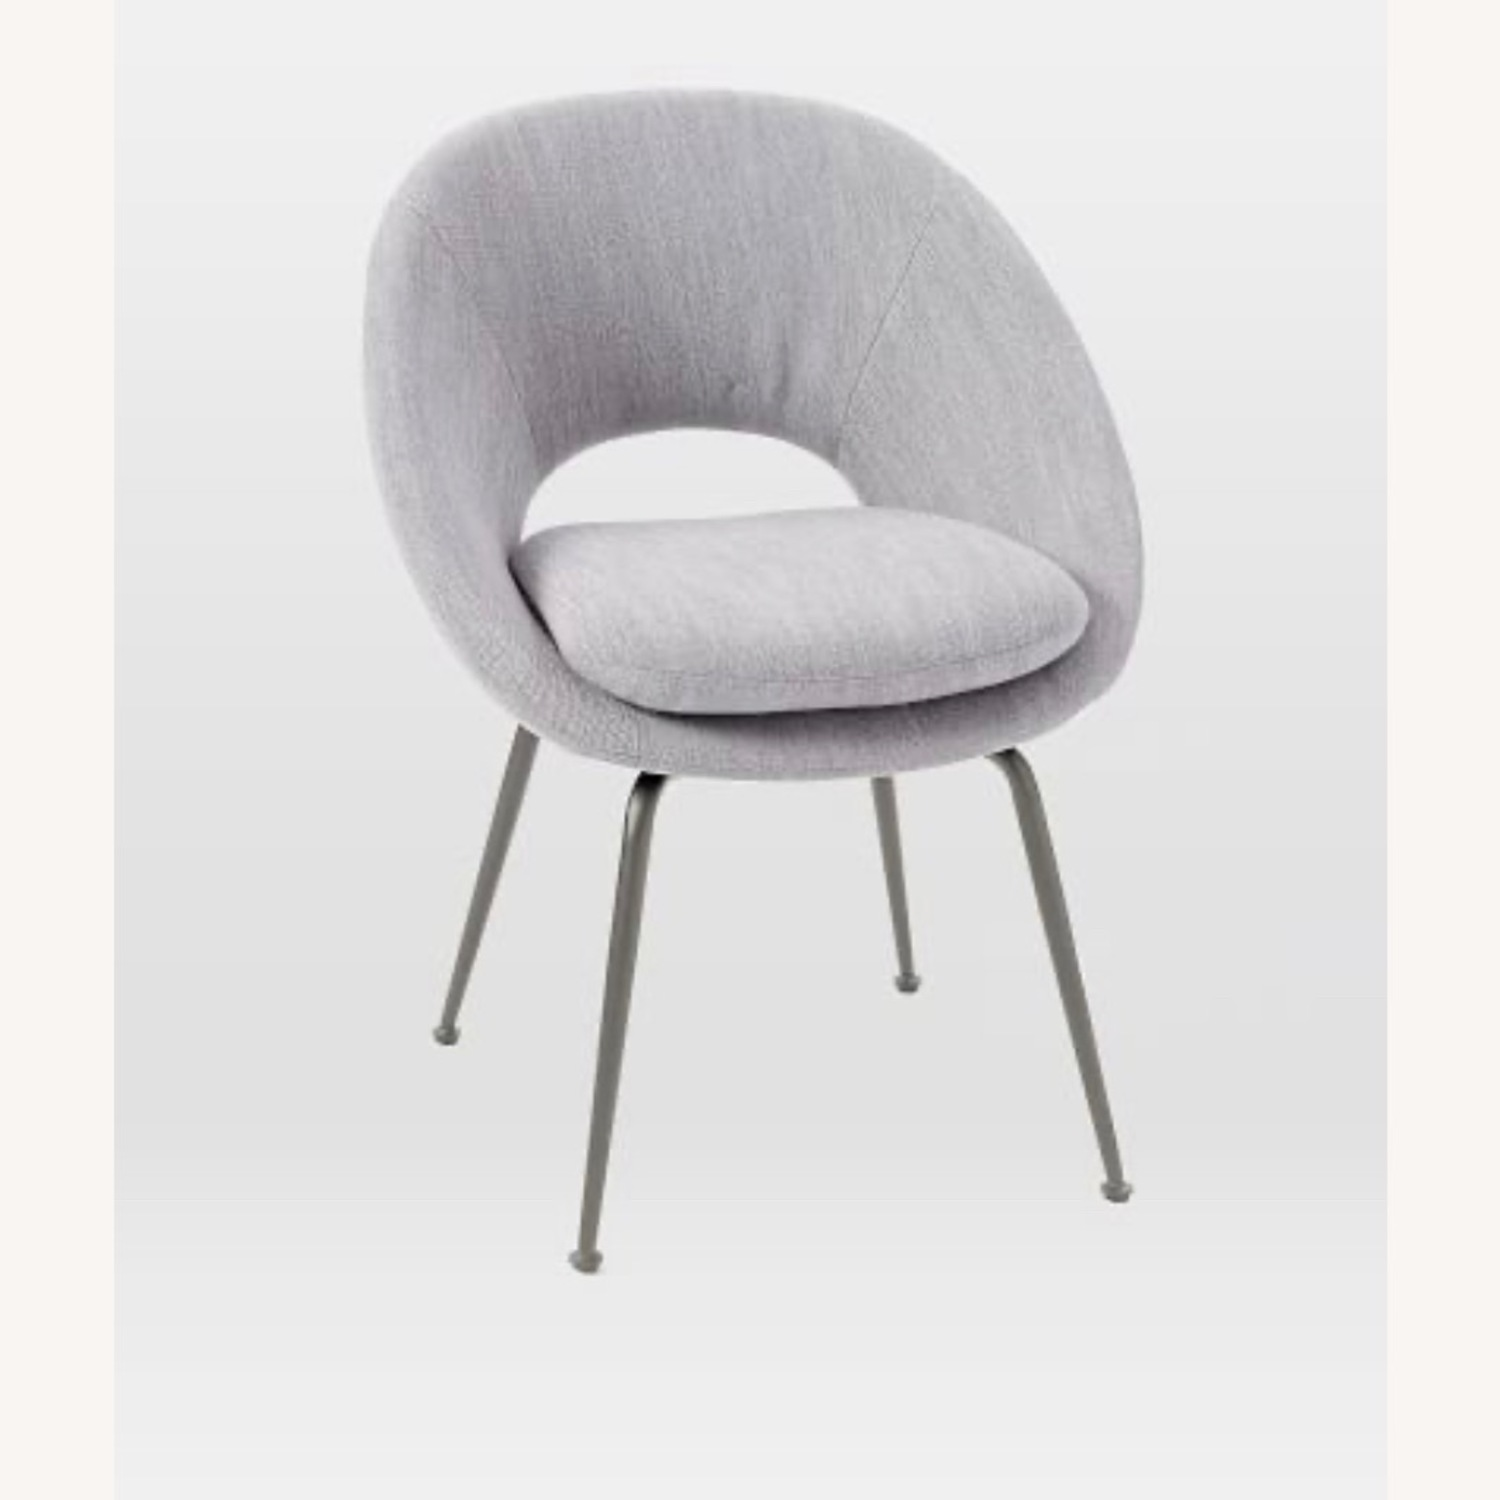 West Elm Orb Dining Chair Linen Weave - image-1